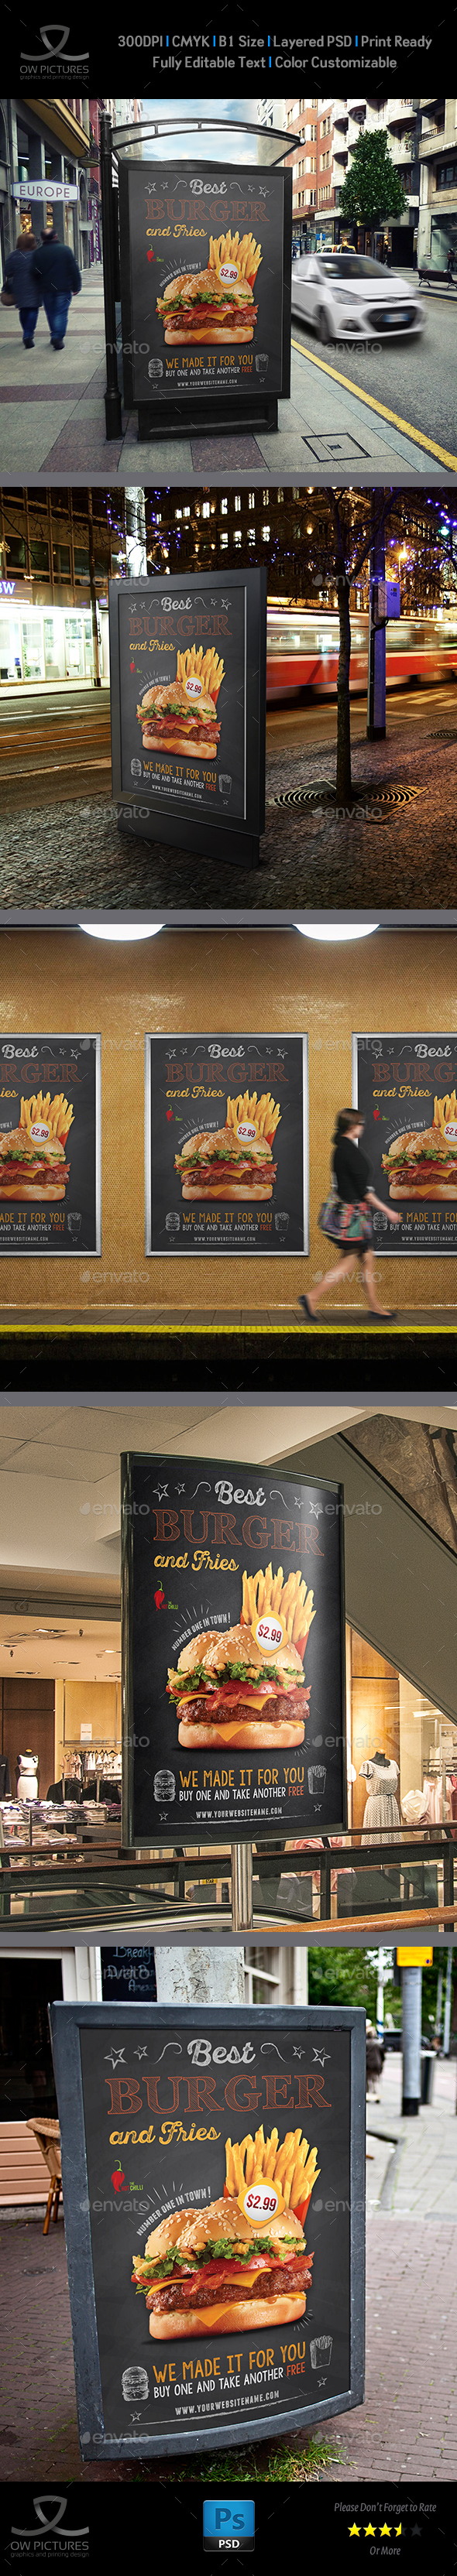 Burger Restaurant Poster Template Vol.4